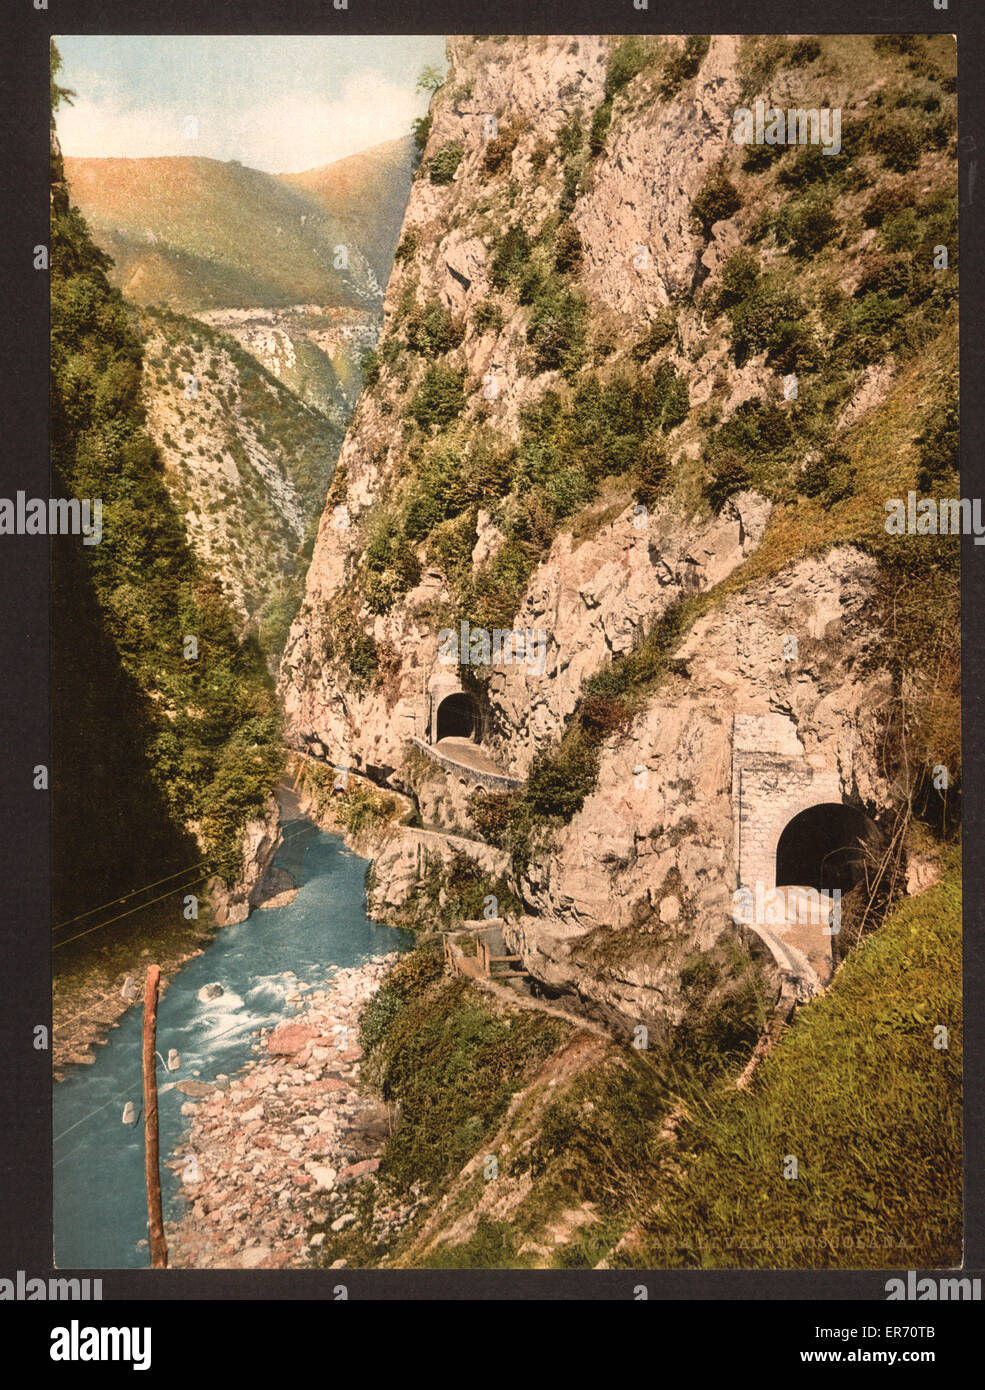 Toscolana (i.e. Toscolano) Valley, roads and tunnels, Lake Garda, Italy. Date between ca. 1890 and ca. 1900. Stock Photo